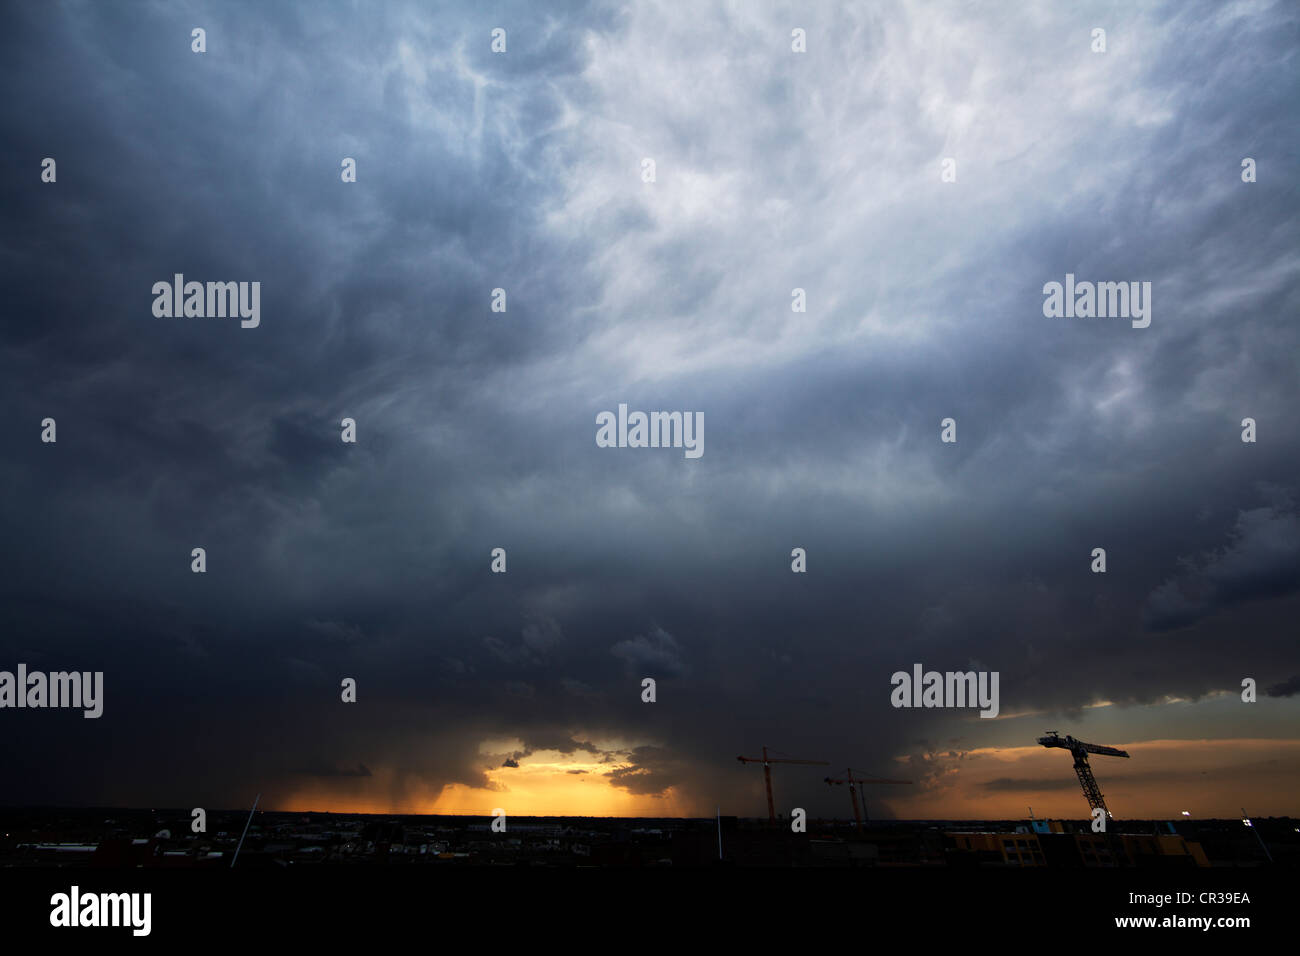 Two areas of very heavy rainfall in a thunderstorm, showing tower cranes and mammatus clouds. - Stock Image